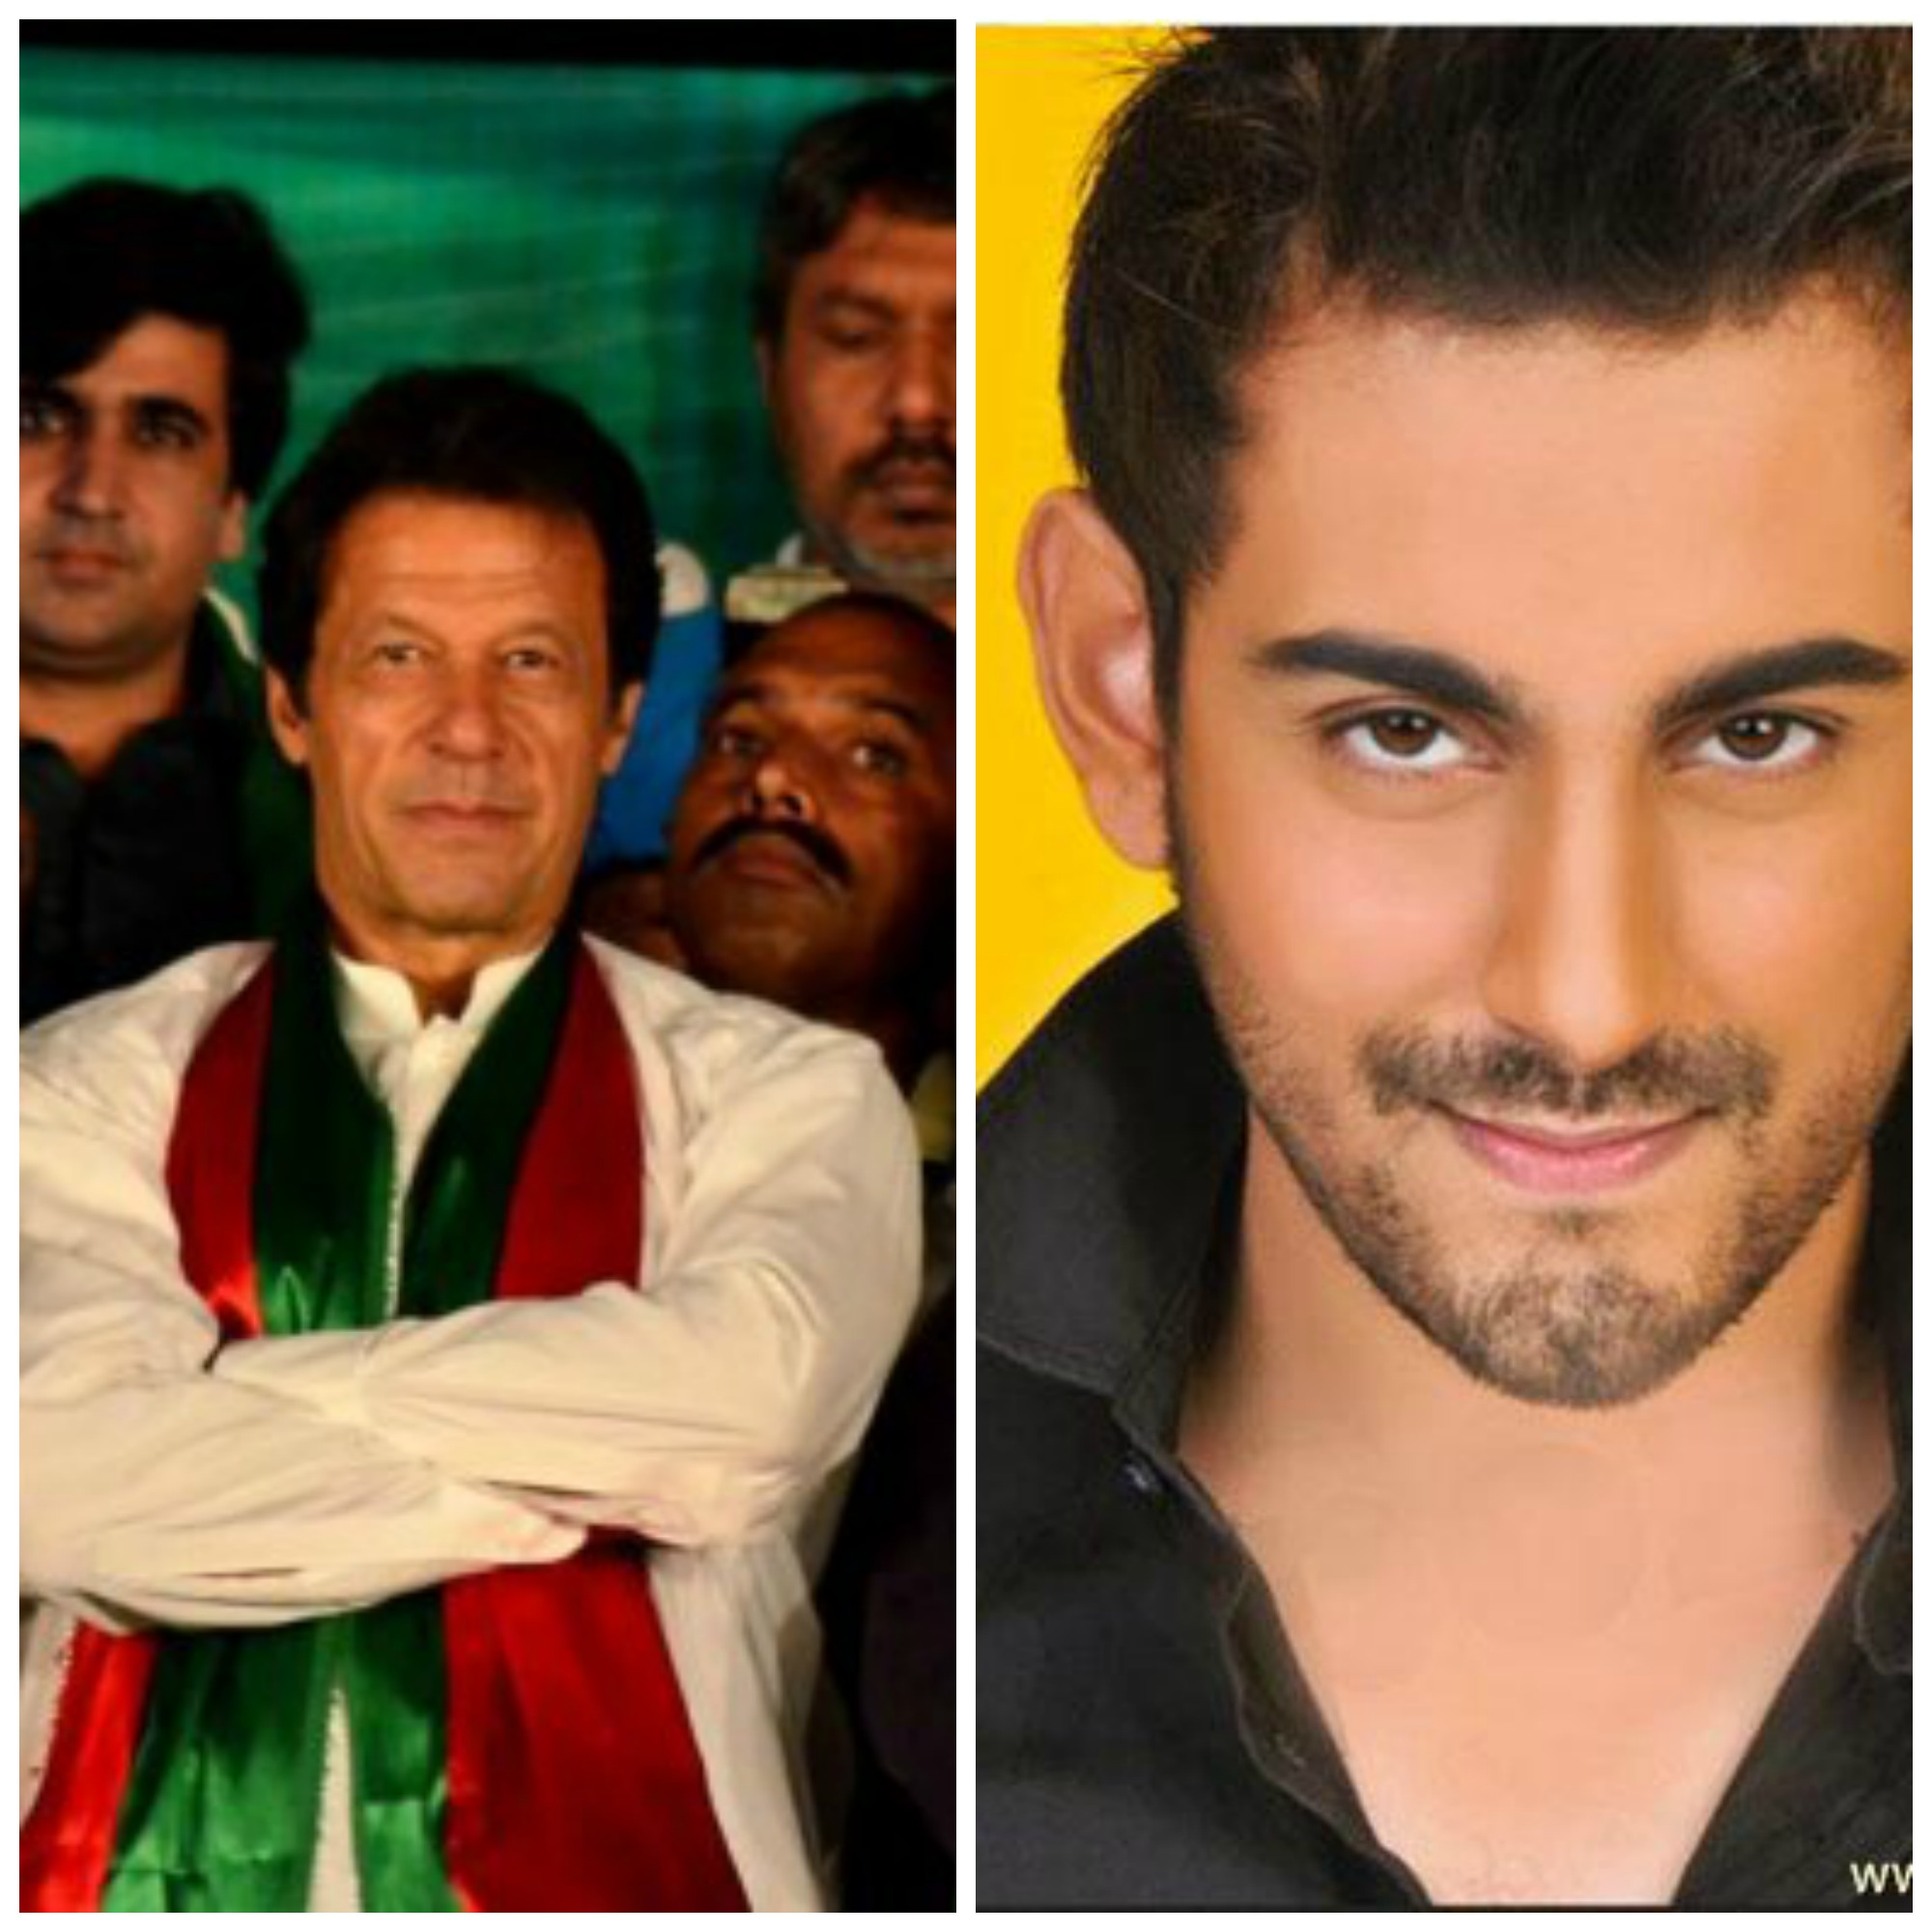 larho-mujhay-remix-tribute-to-imran-khan-by-bilal-khan